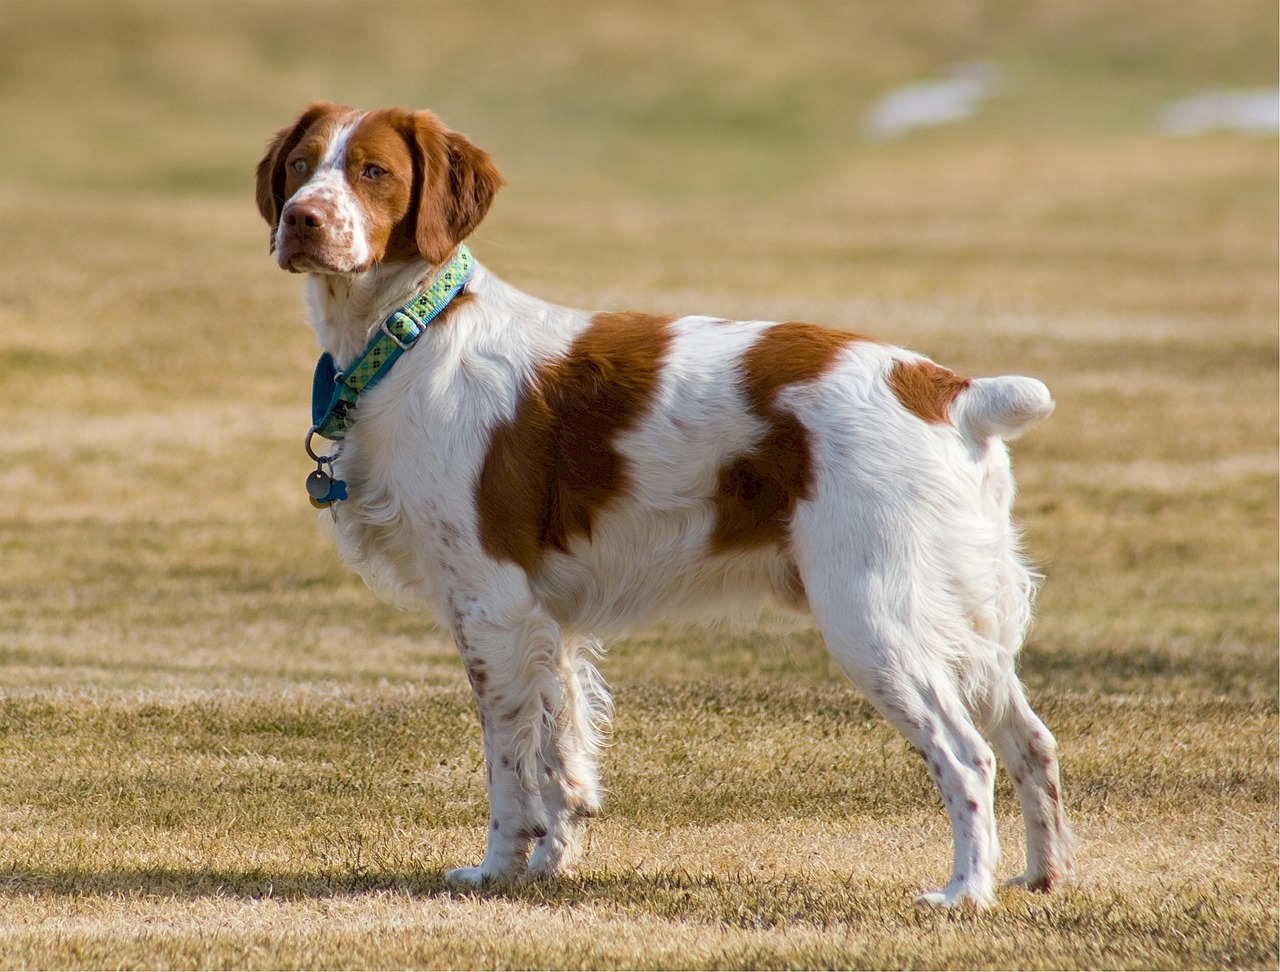 A brown and white Brittany standing in a field.